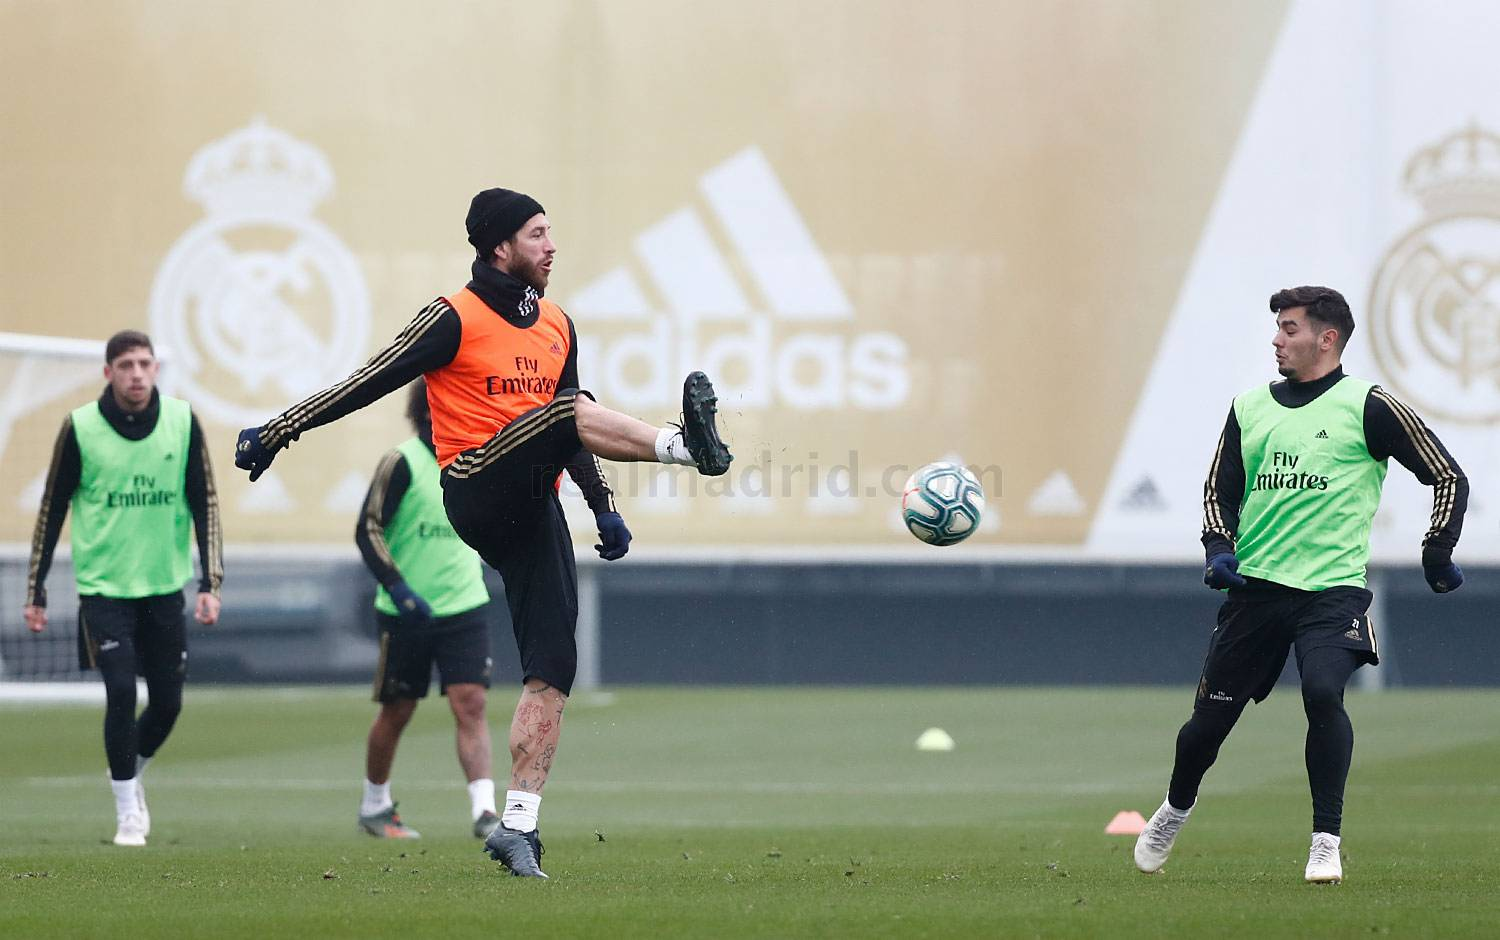 Real Madrid - Entrenamiento del Real Madrid  - 21-11-2019